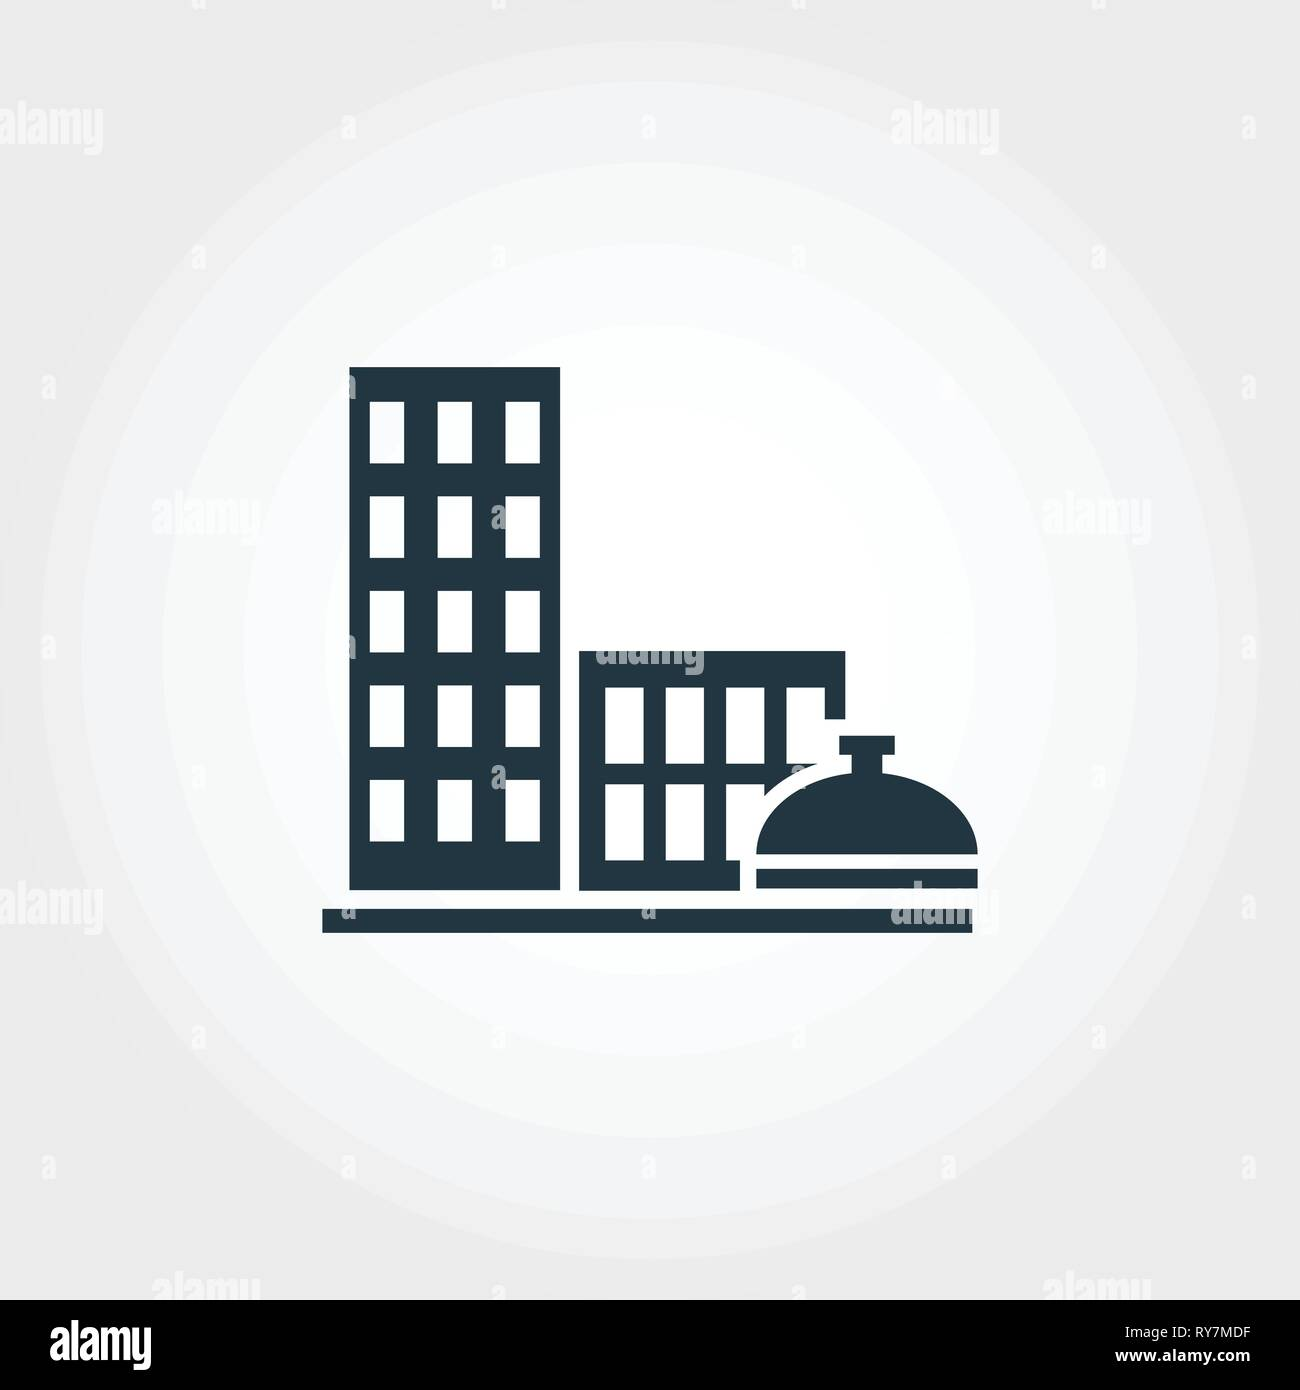 City Services creative icon. Monochrome style design from urbanism icons collection. City Services icon for web design, apps, software, print usage - Stock Vector